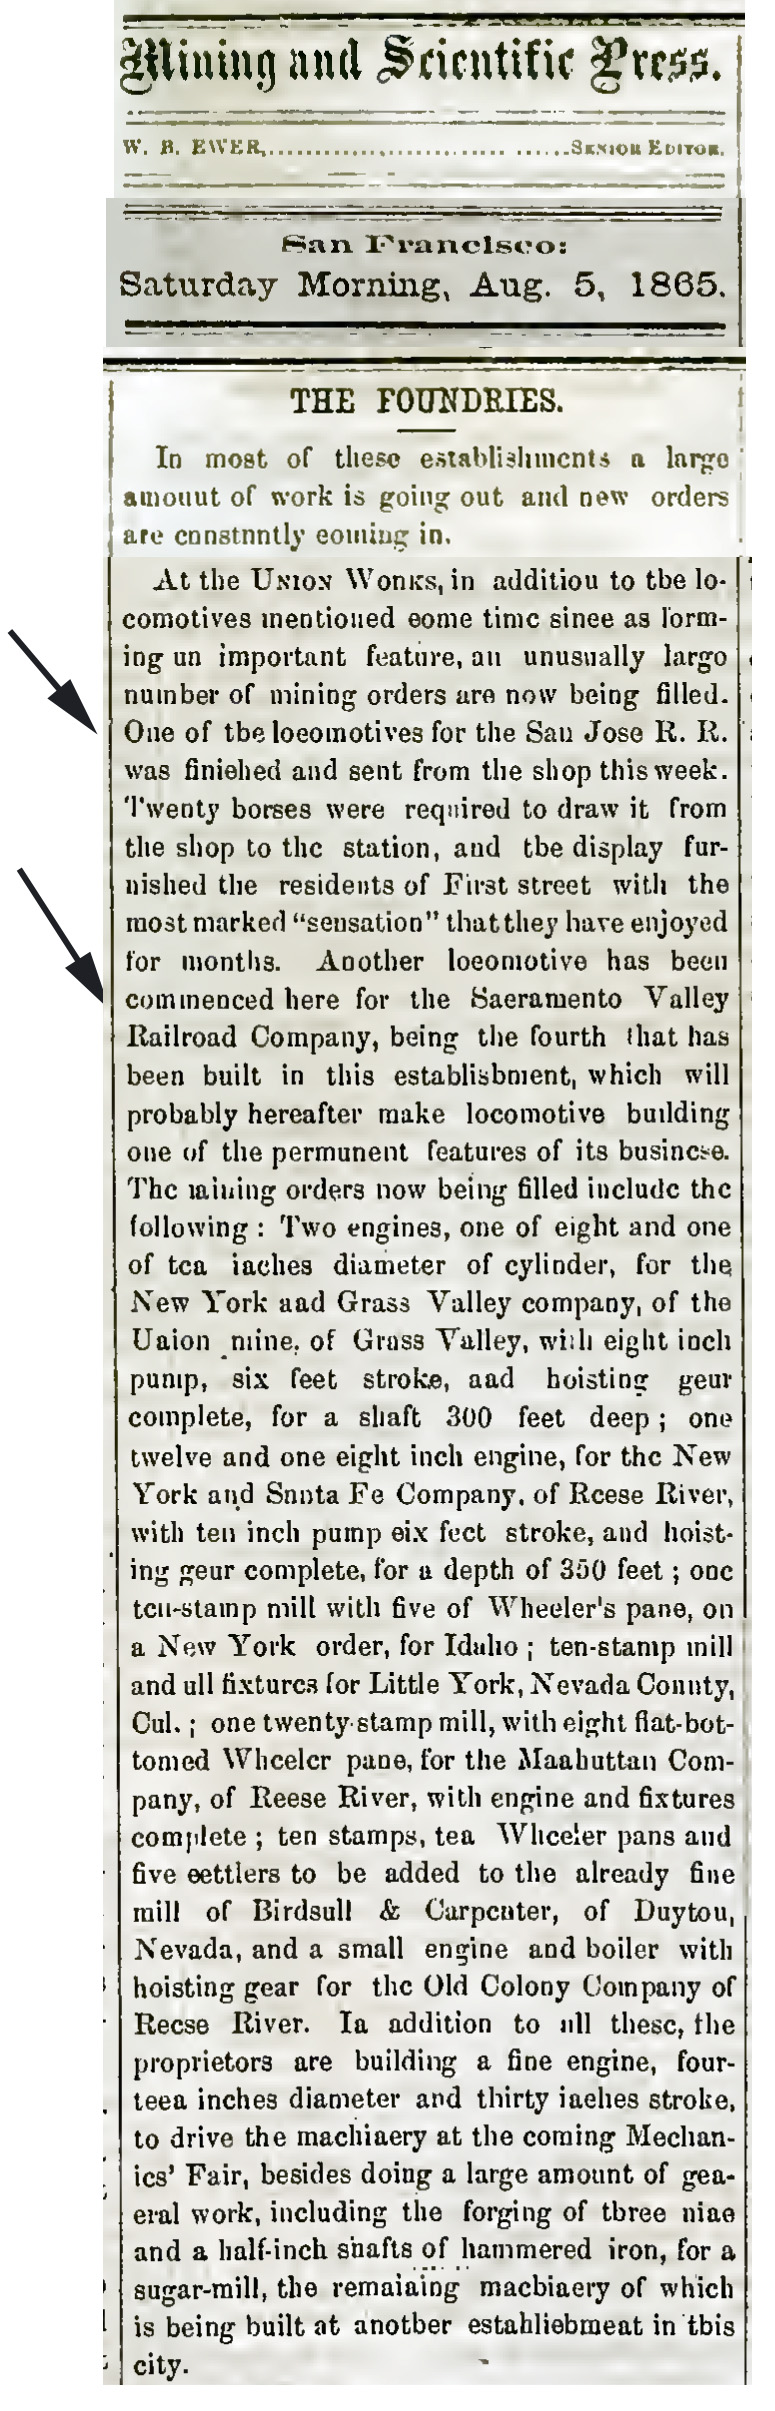 1865-08-05 Union Iron Works building locos for SF&SJ and Sac Valley - Mining & Scientific Press Aug 5, 1865, p 71.